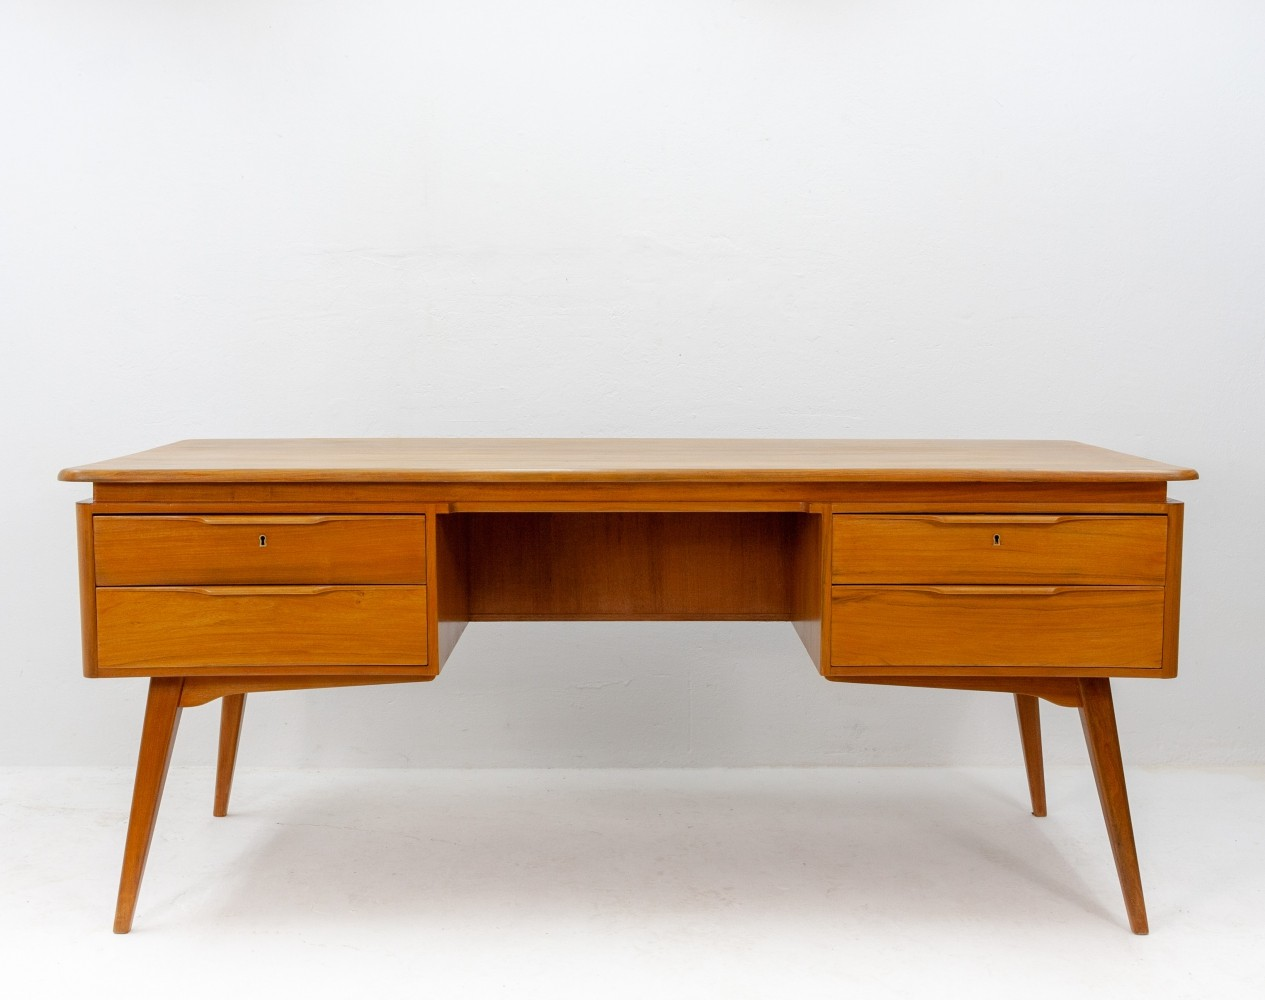 Curved writing desk by A. Patijn for Zijlstra Joure